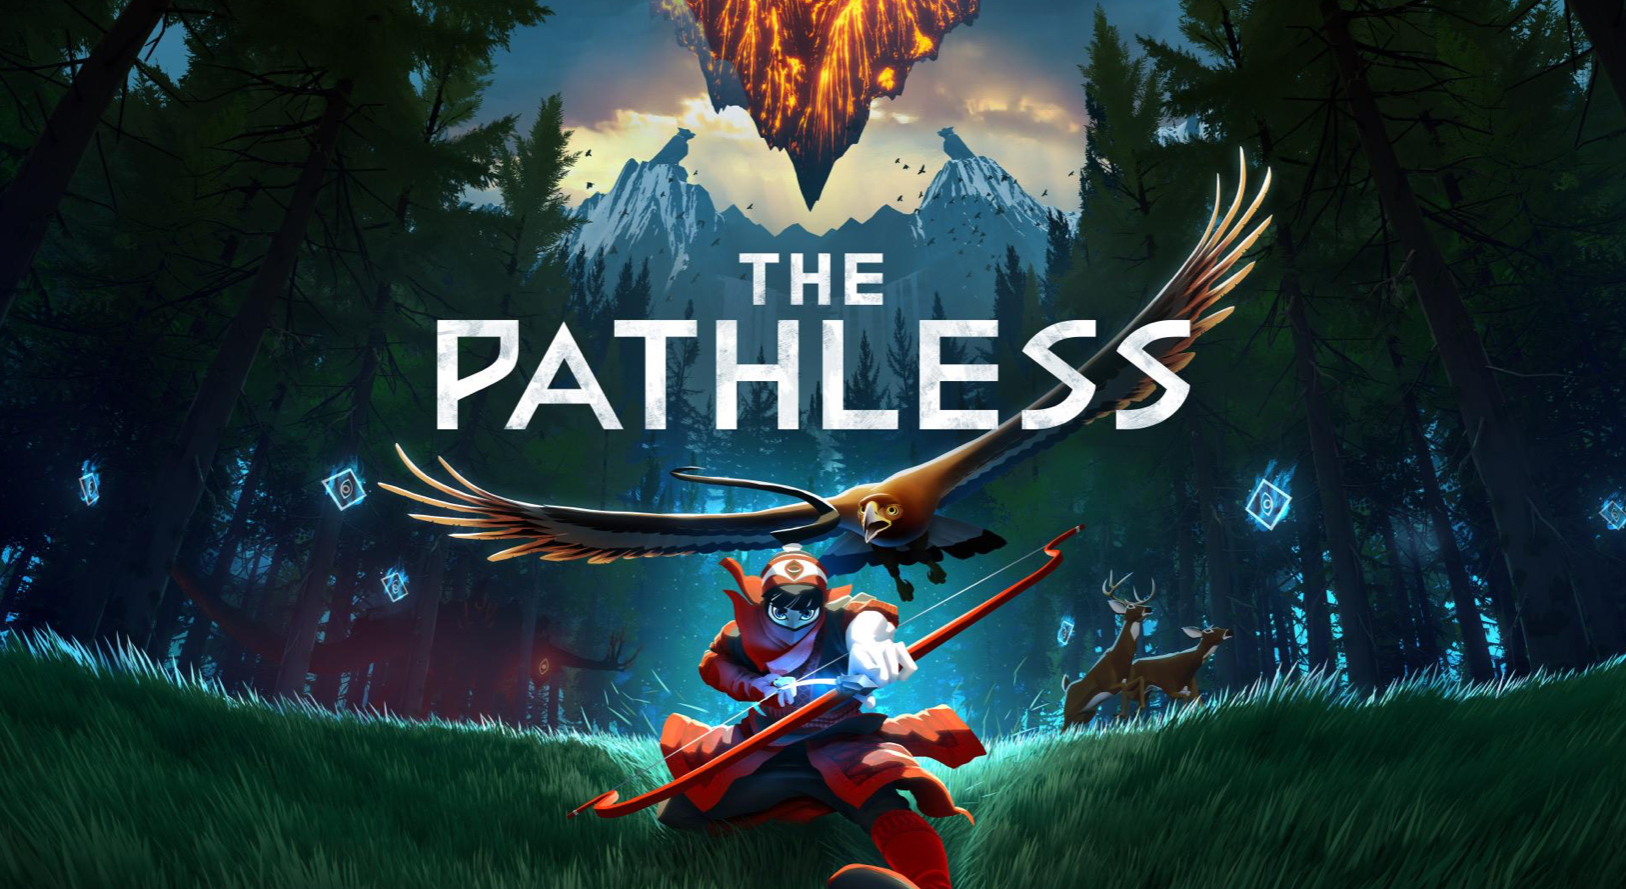 'The Pathless' from Giant Squid and Annapurna Interactive Gets an Extended Gameplay Showcase Ahead of Its Release This Year on Apple Arcade